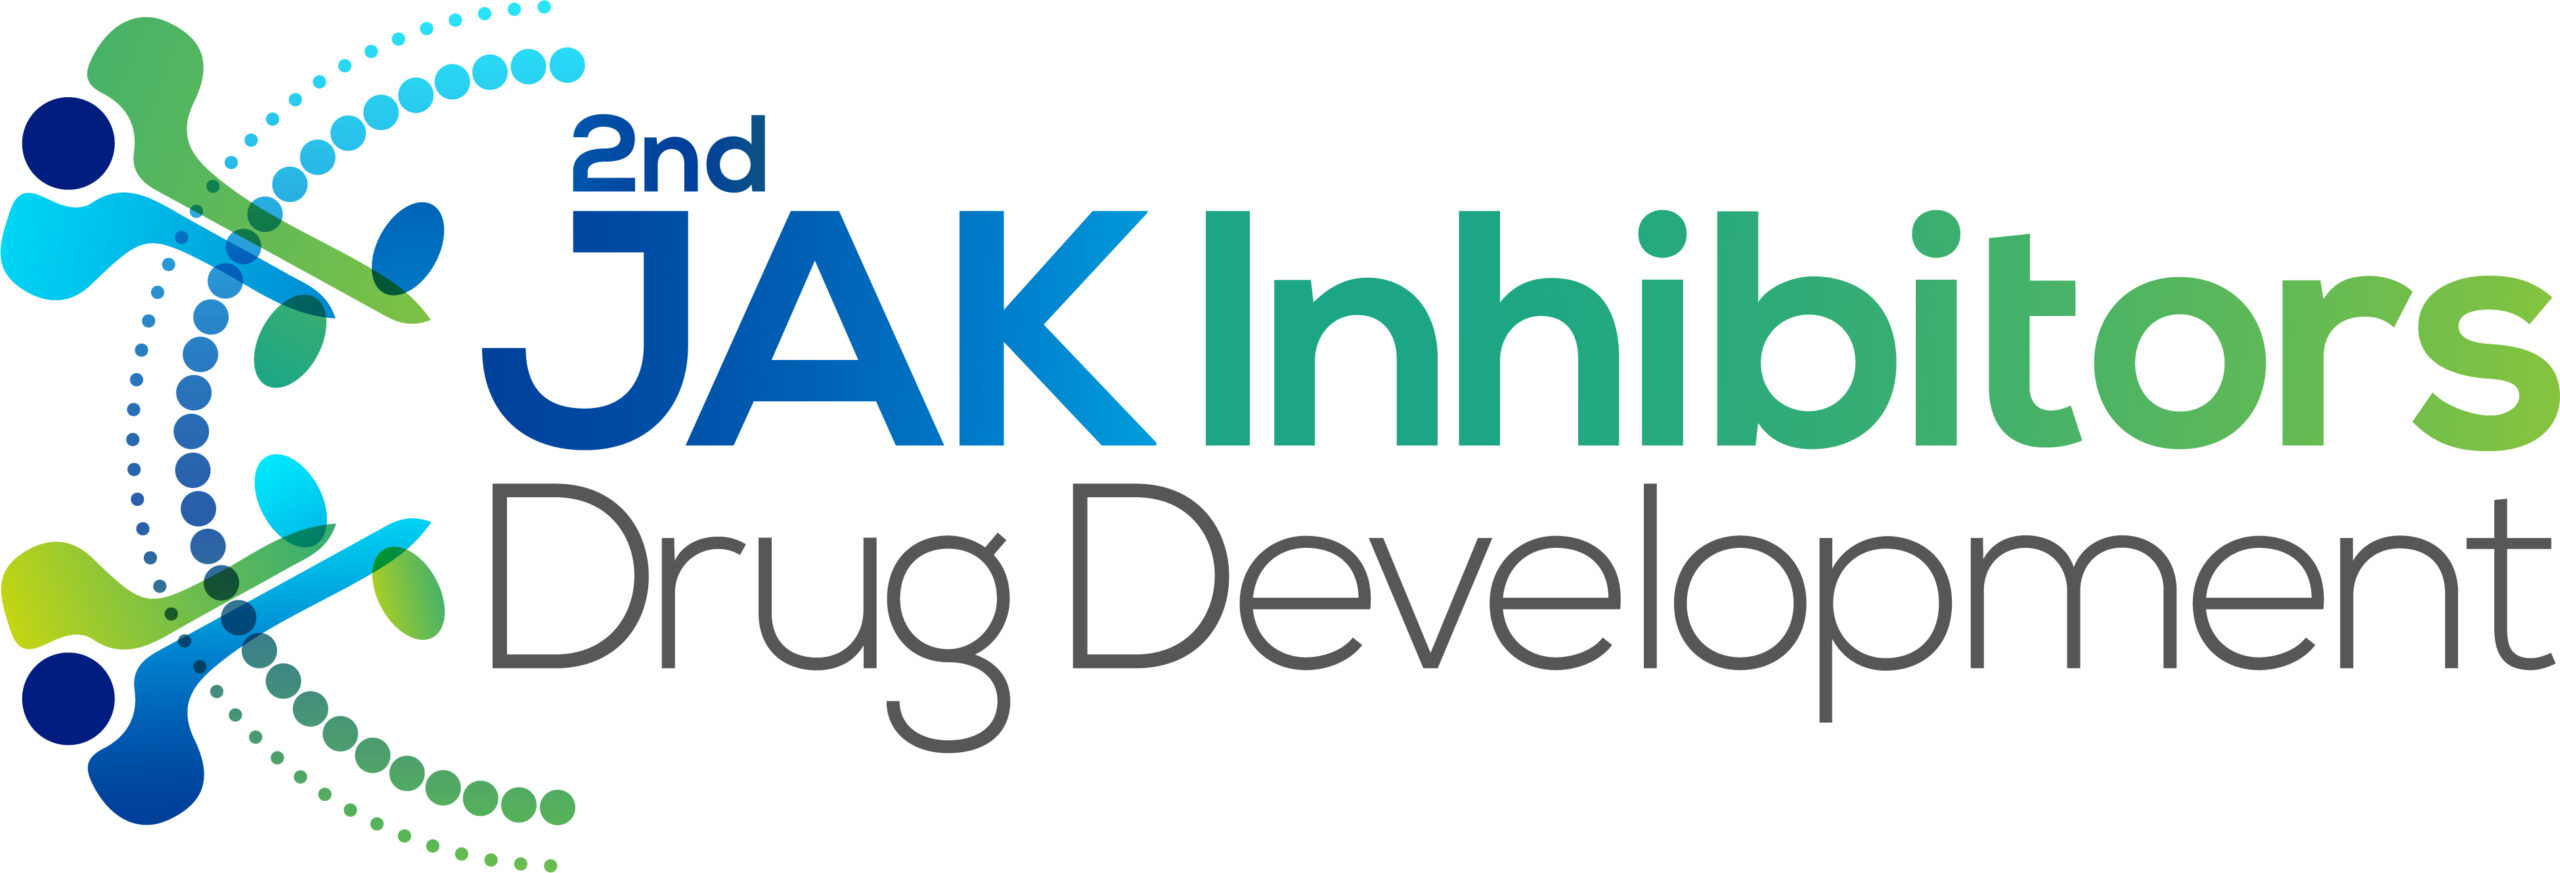 21558- 2nd JAK Inhibitor Drug Development logo (1)